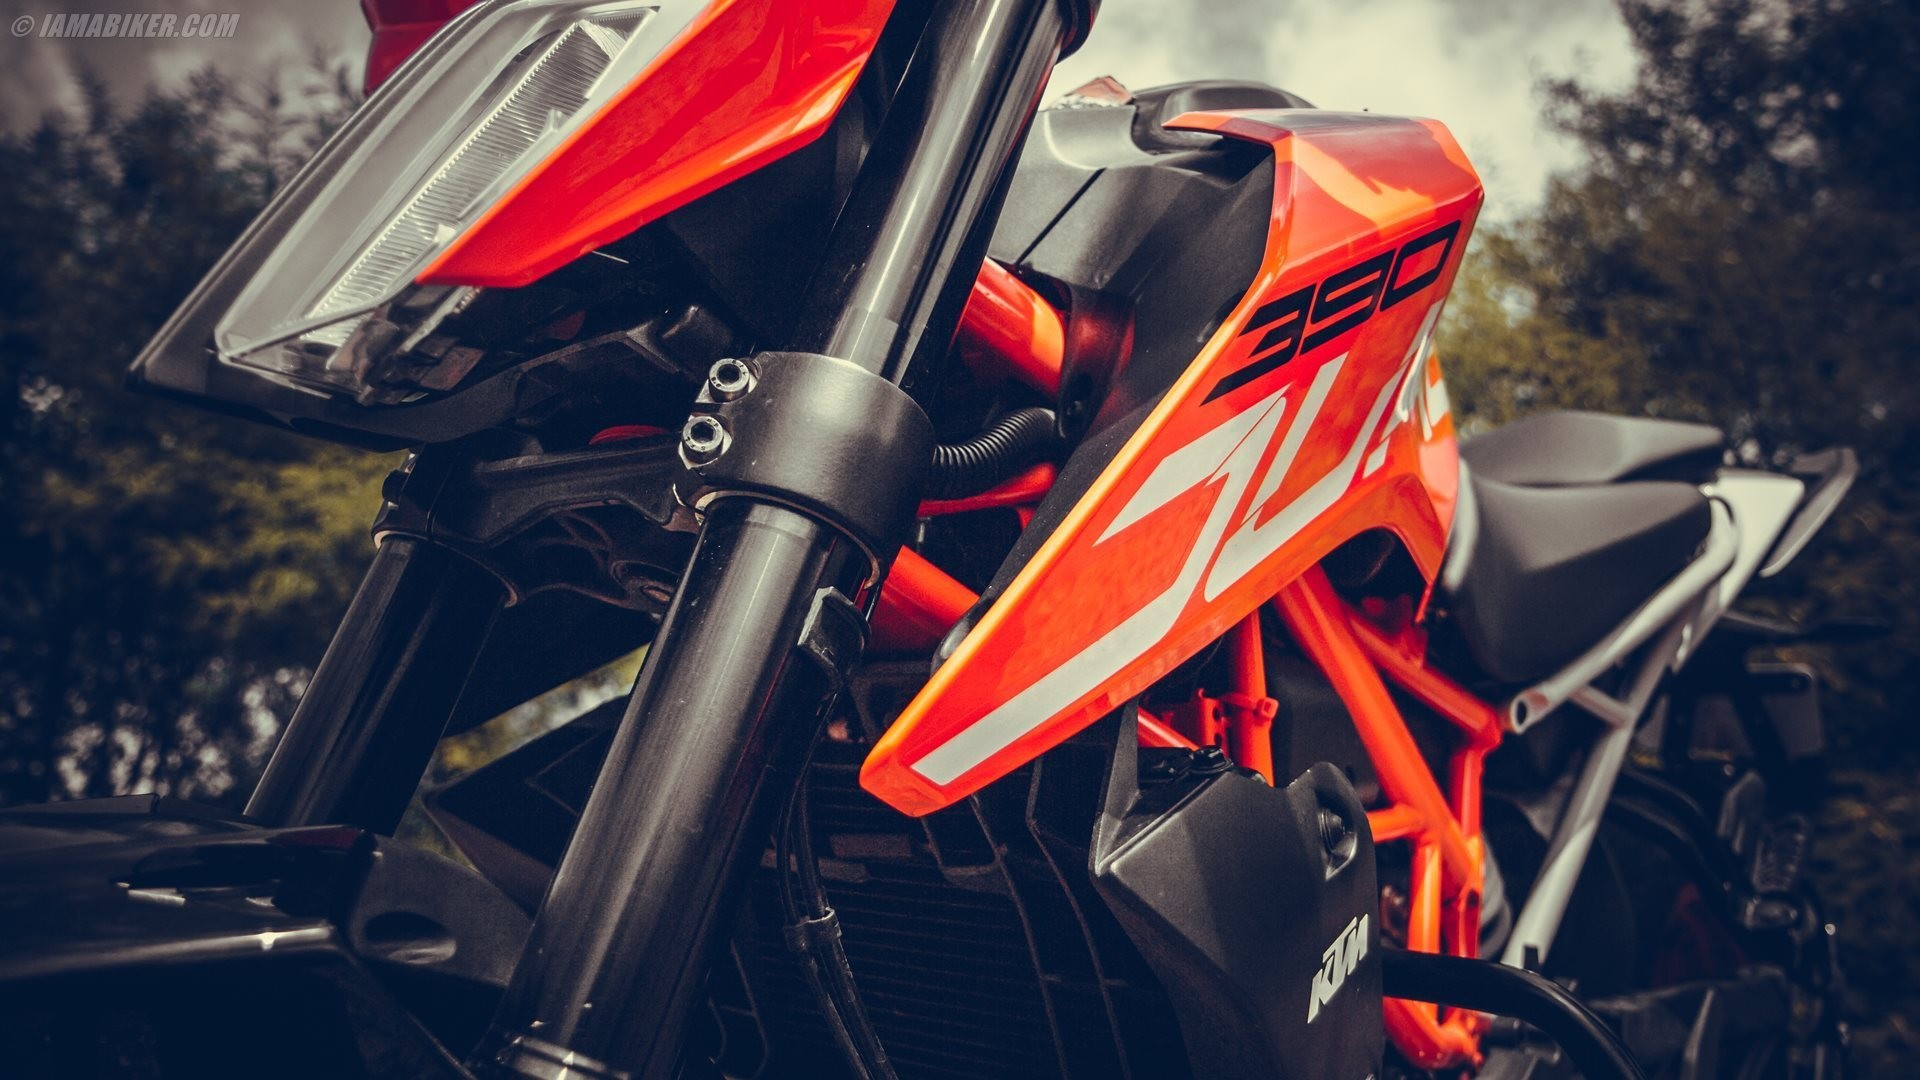 Res: 1920x1080, KTM Duke 390 HD Wallpapers